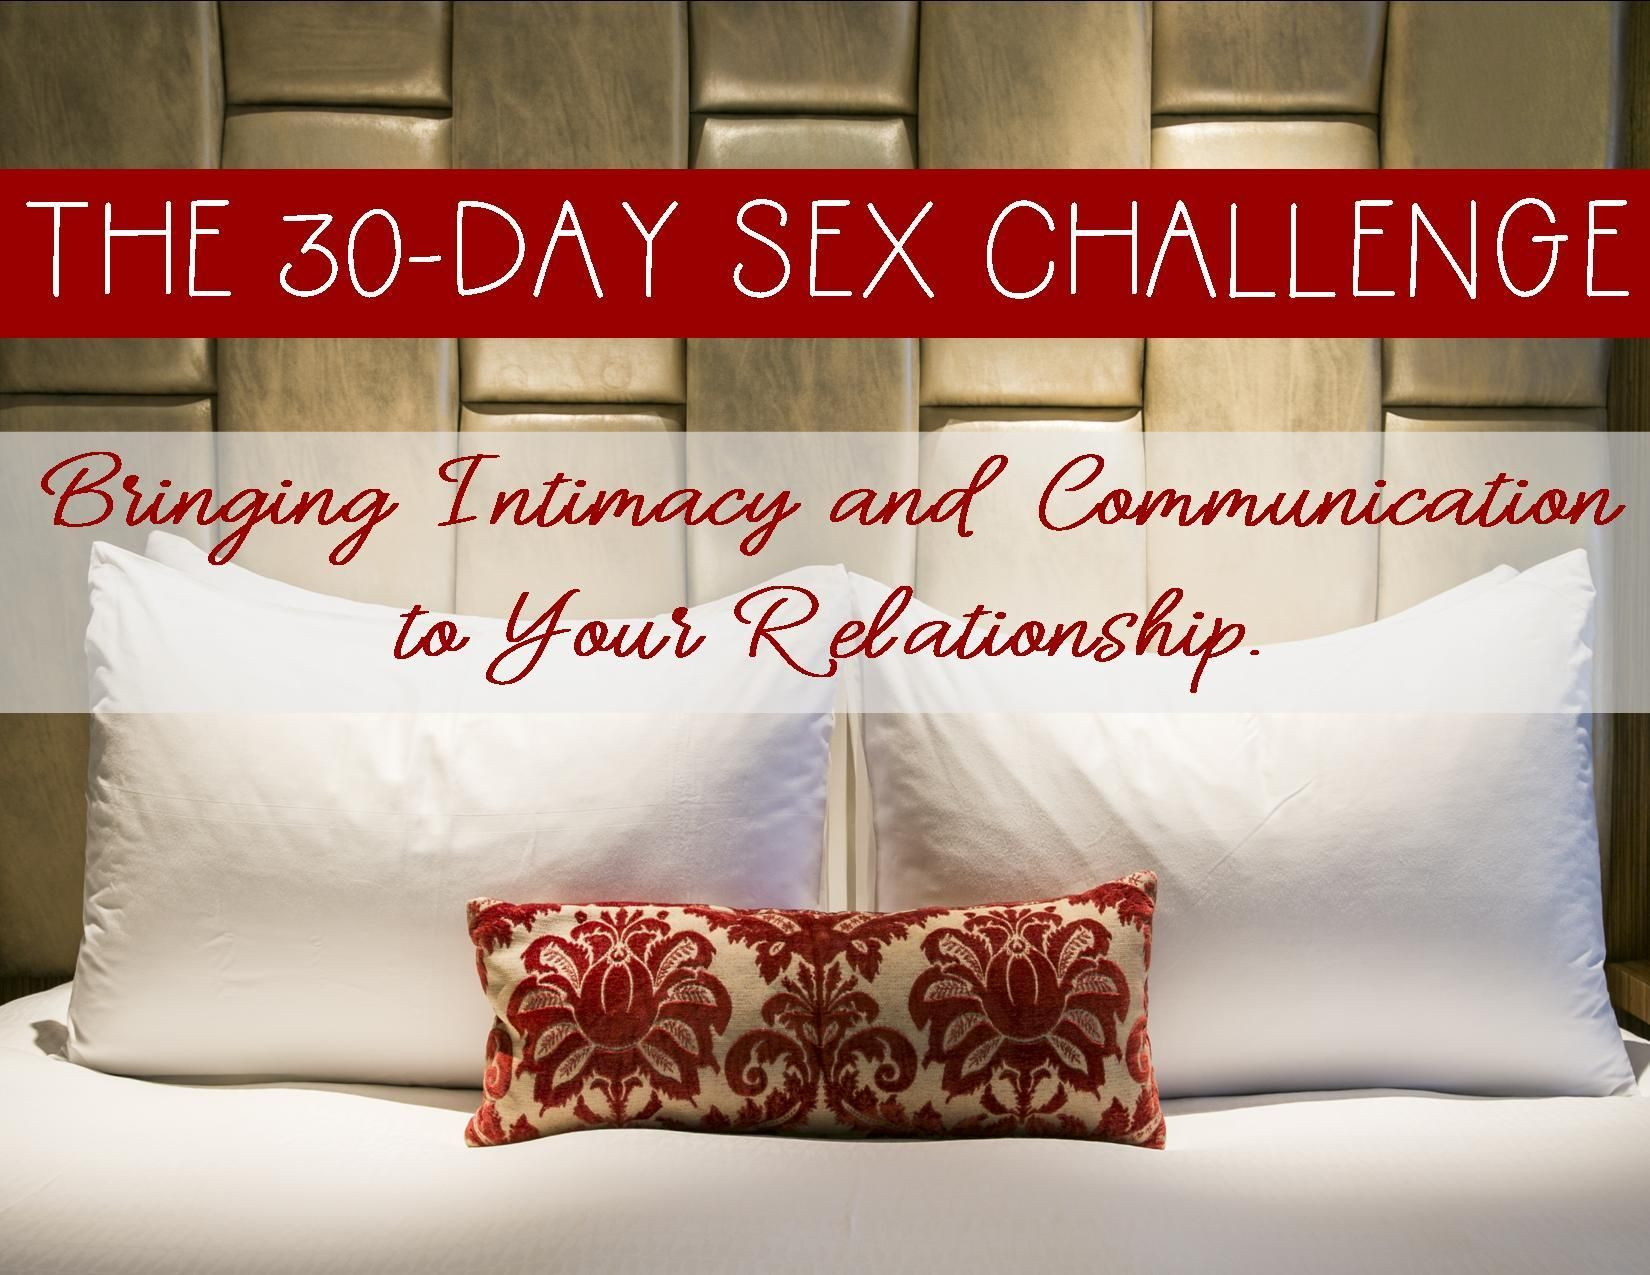 Join The 30 Day Sex Challenge To Improve Intimacy And